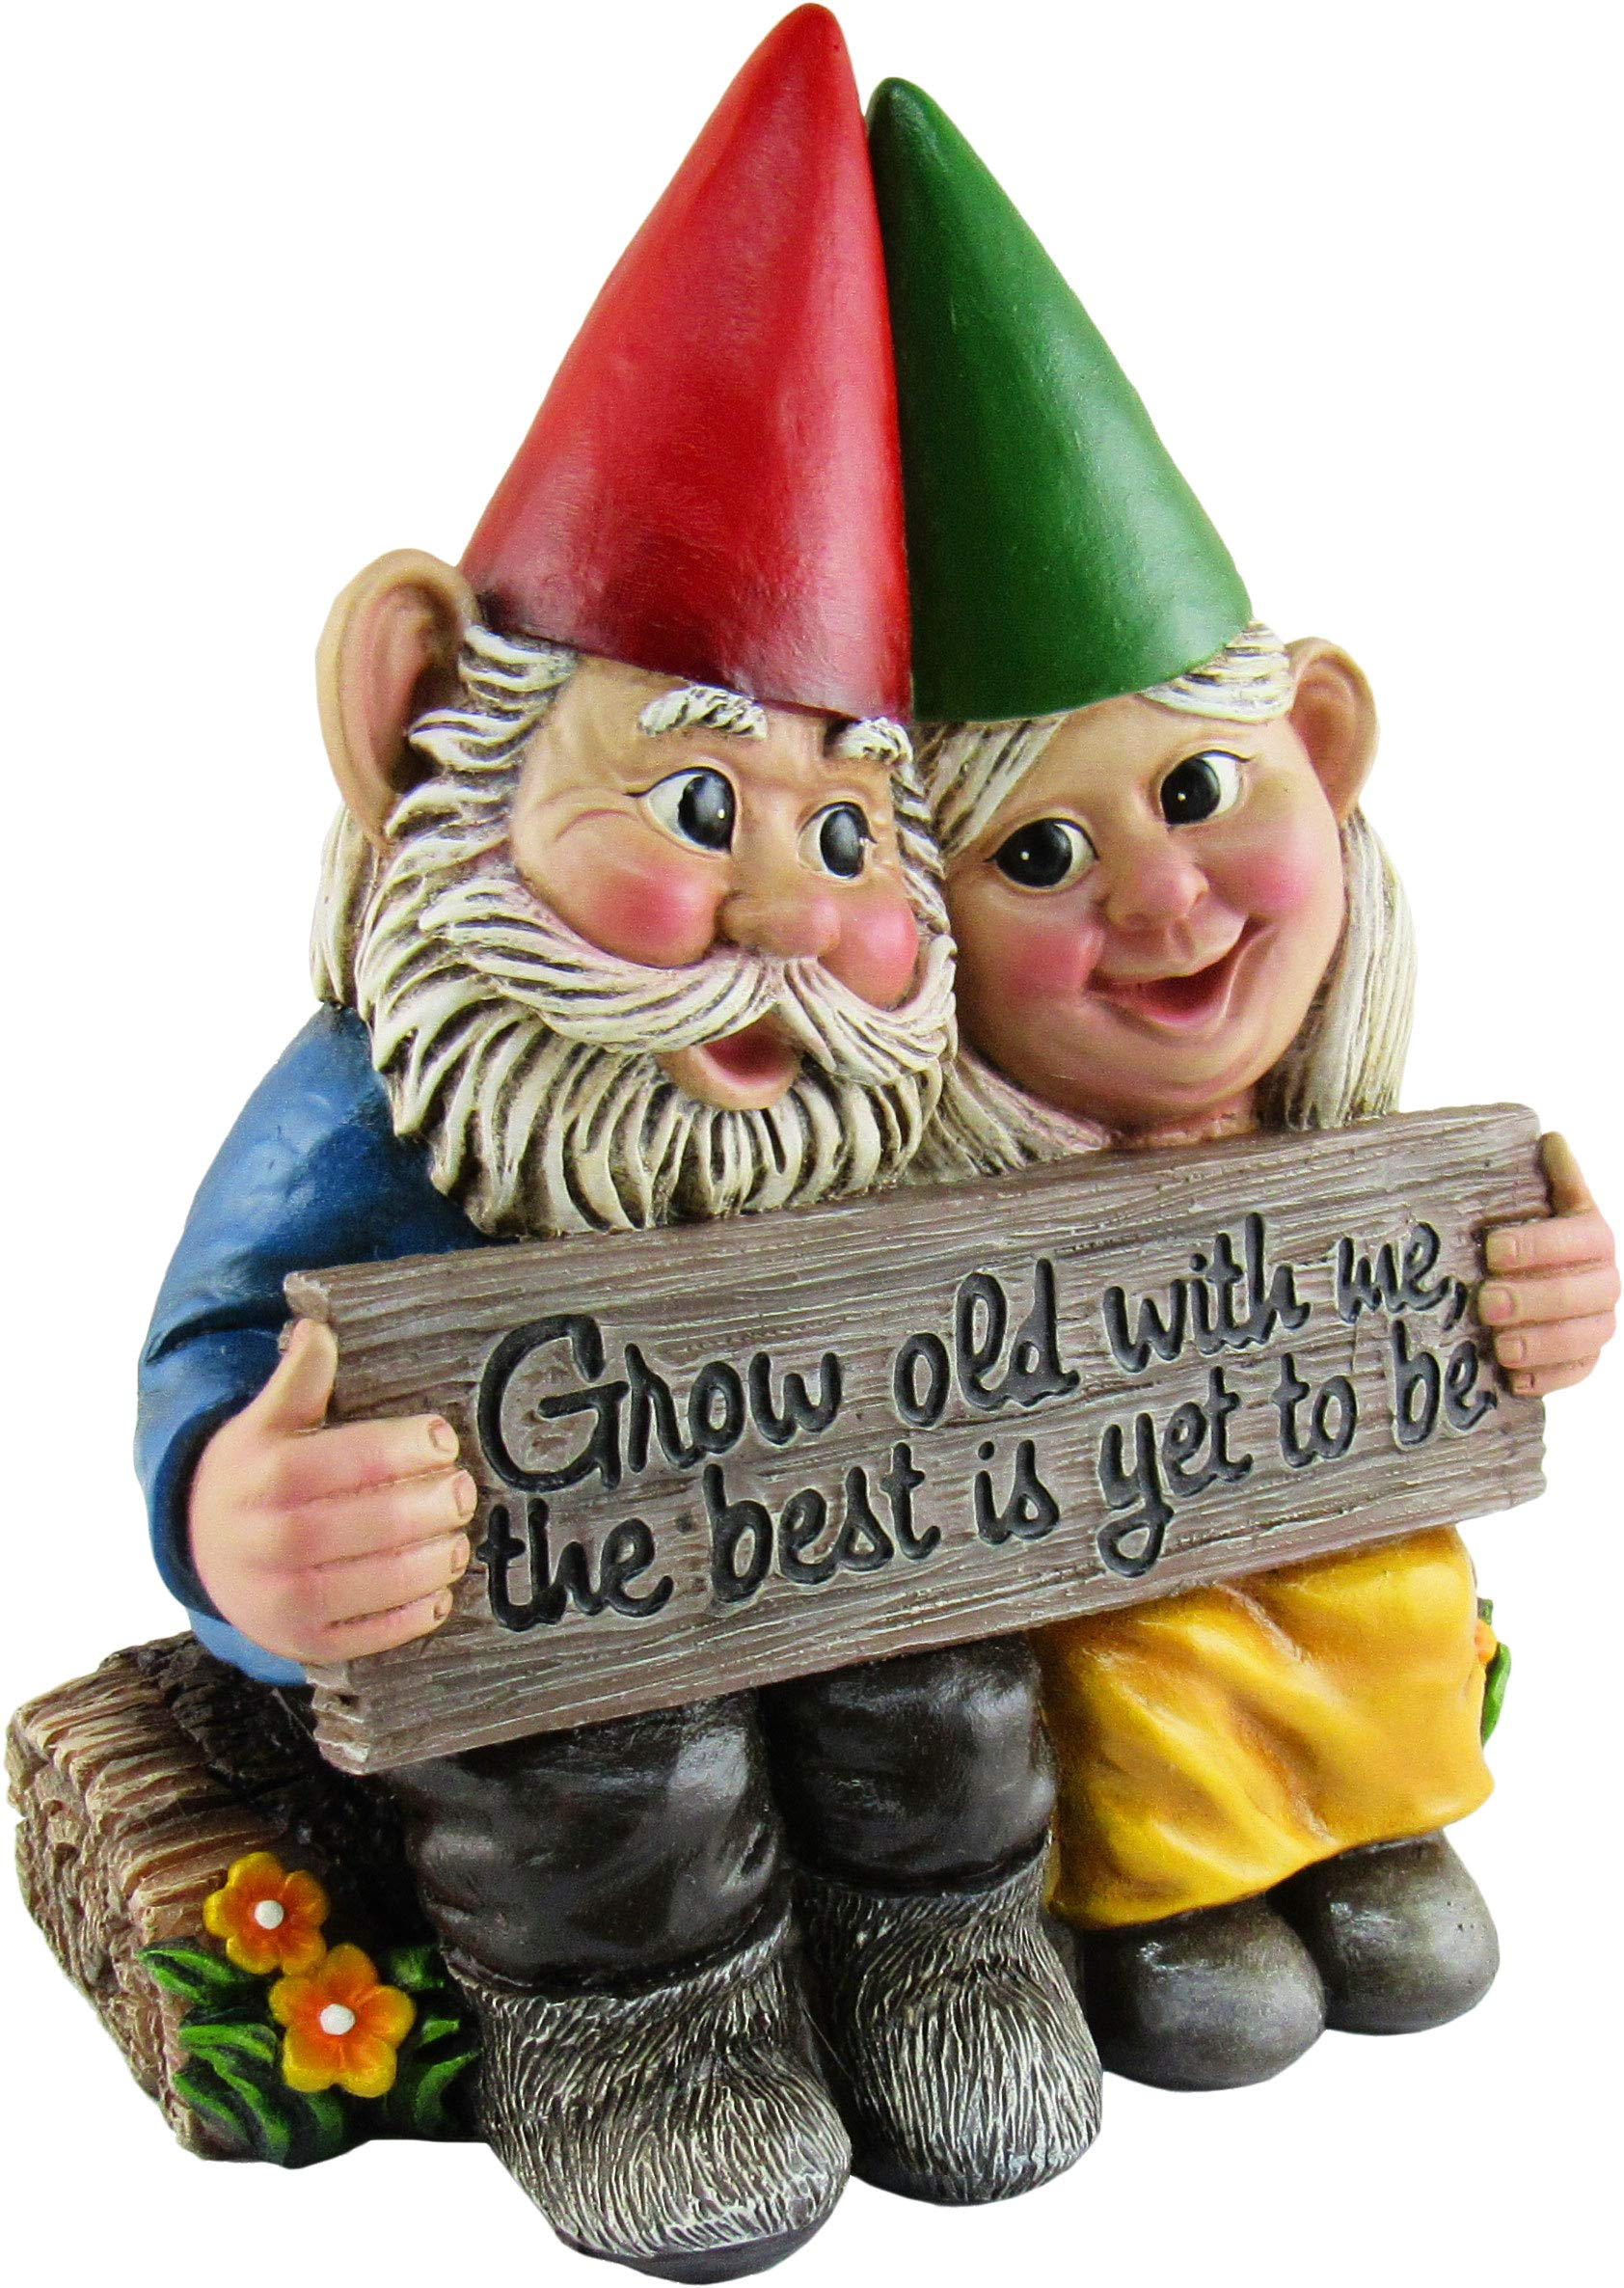 Growing Old Together - Garden Gnome Statue